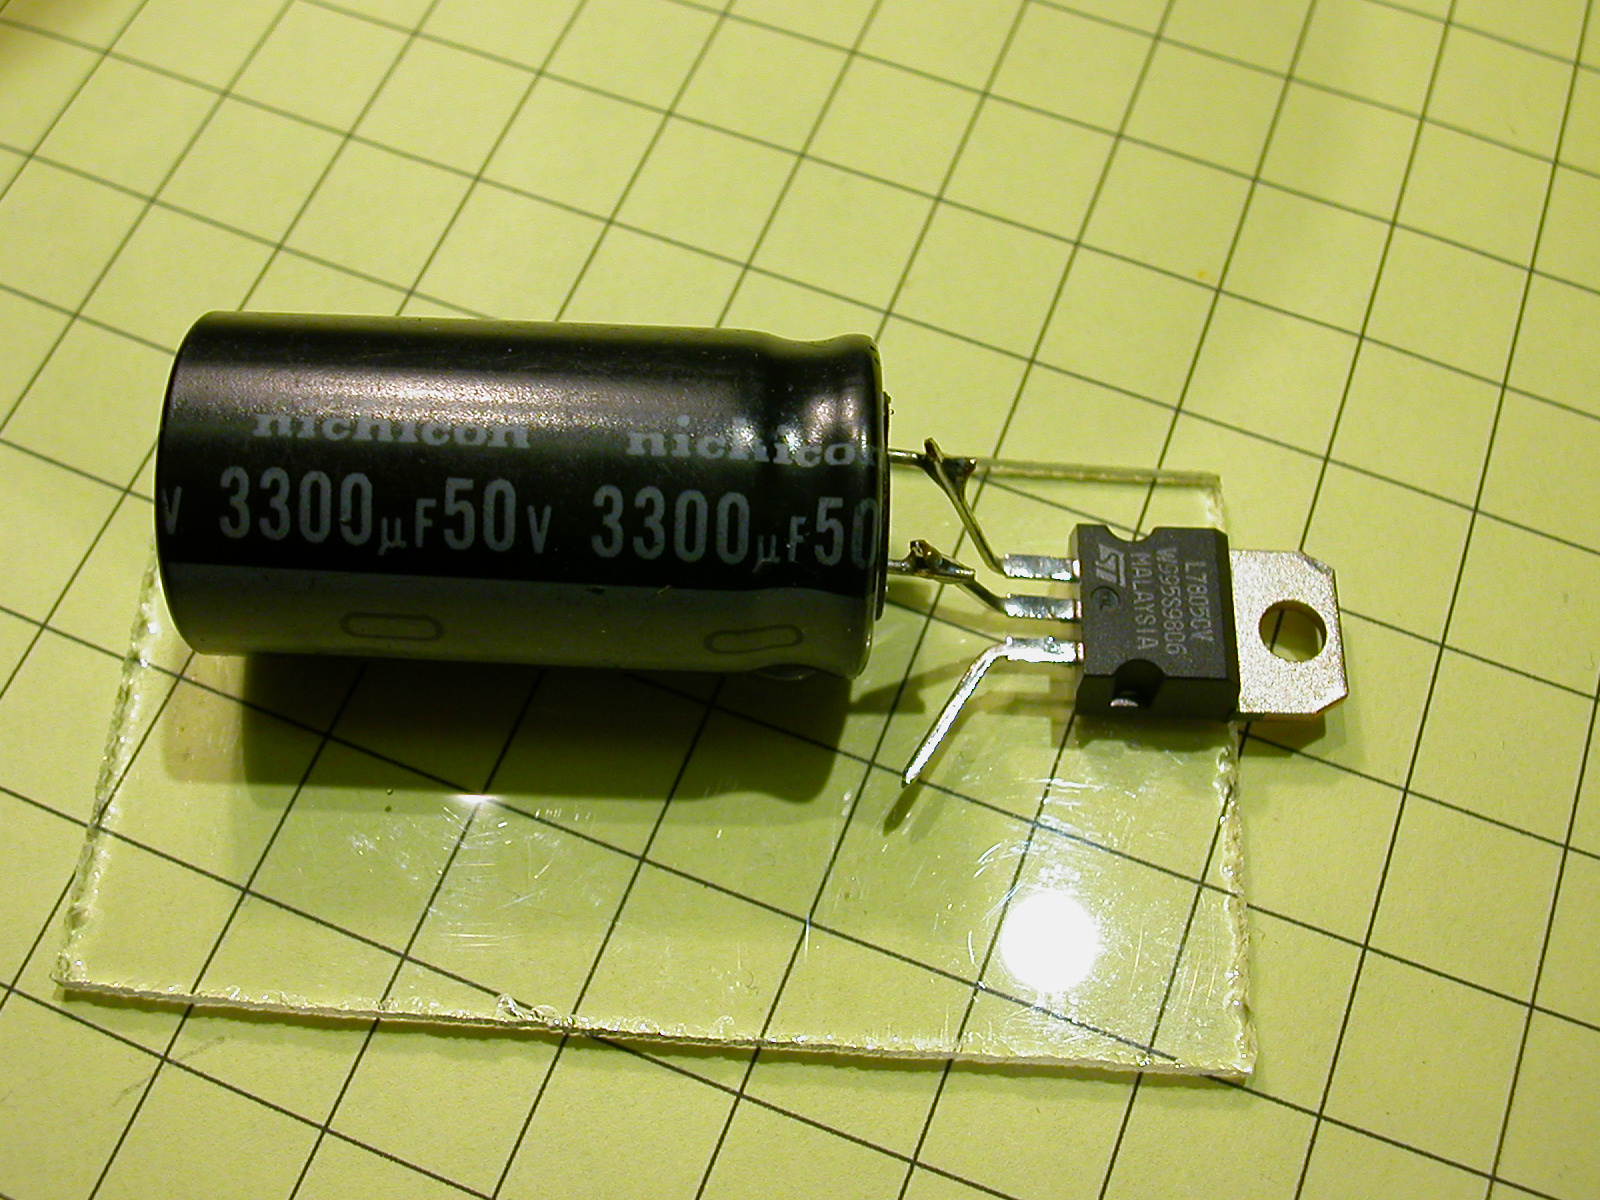 Voltage Regulator Article 6 Volt Circuit Using 7806 There Are Four Leads Two That Connected To The Input From Track And A Positive Negative Output Lead